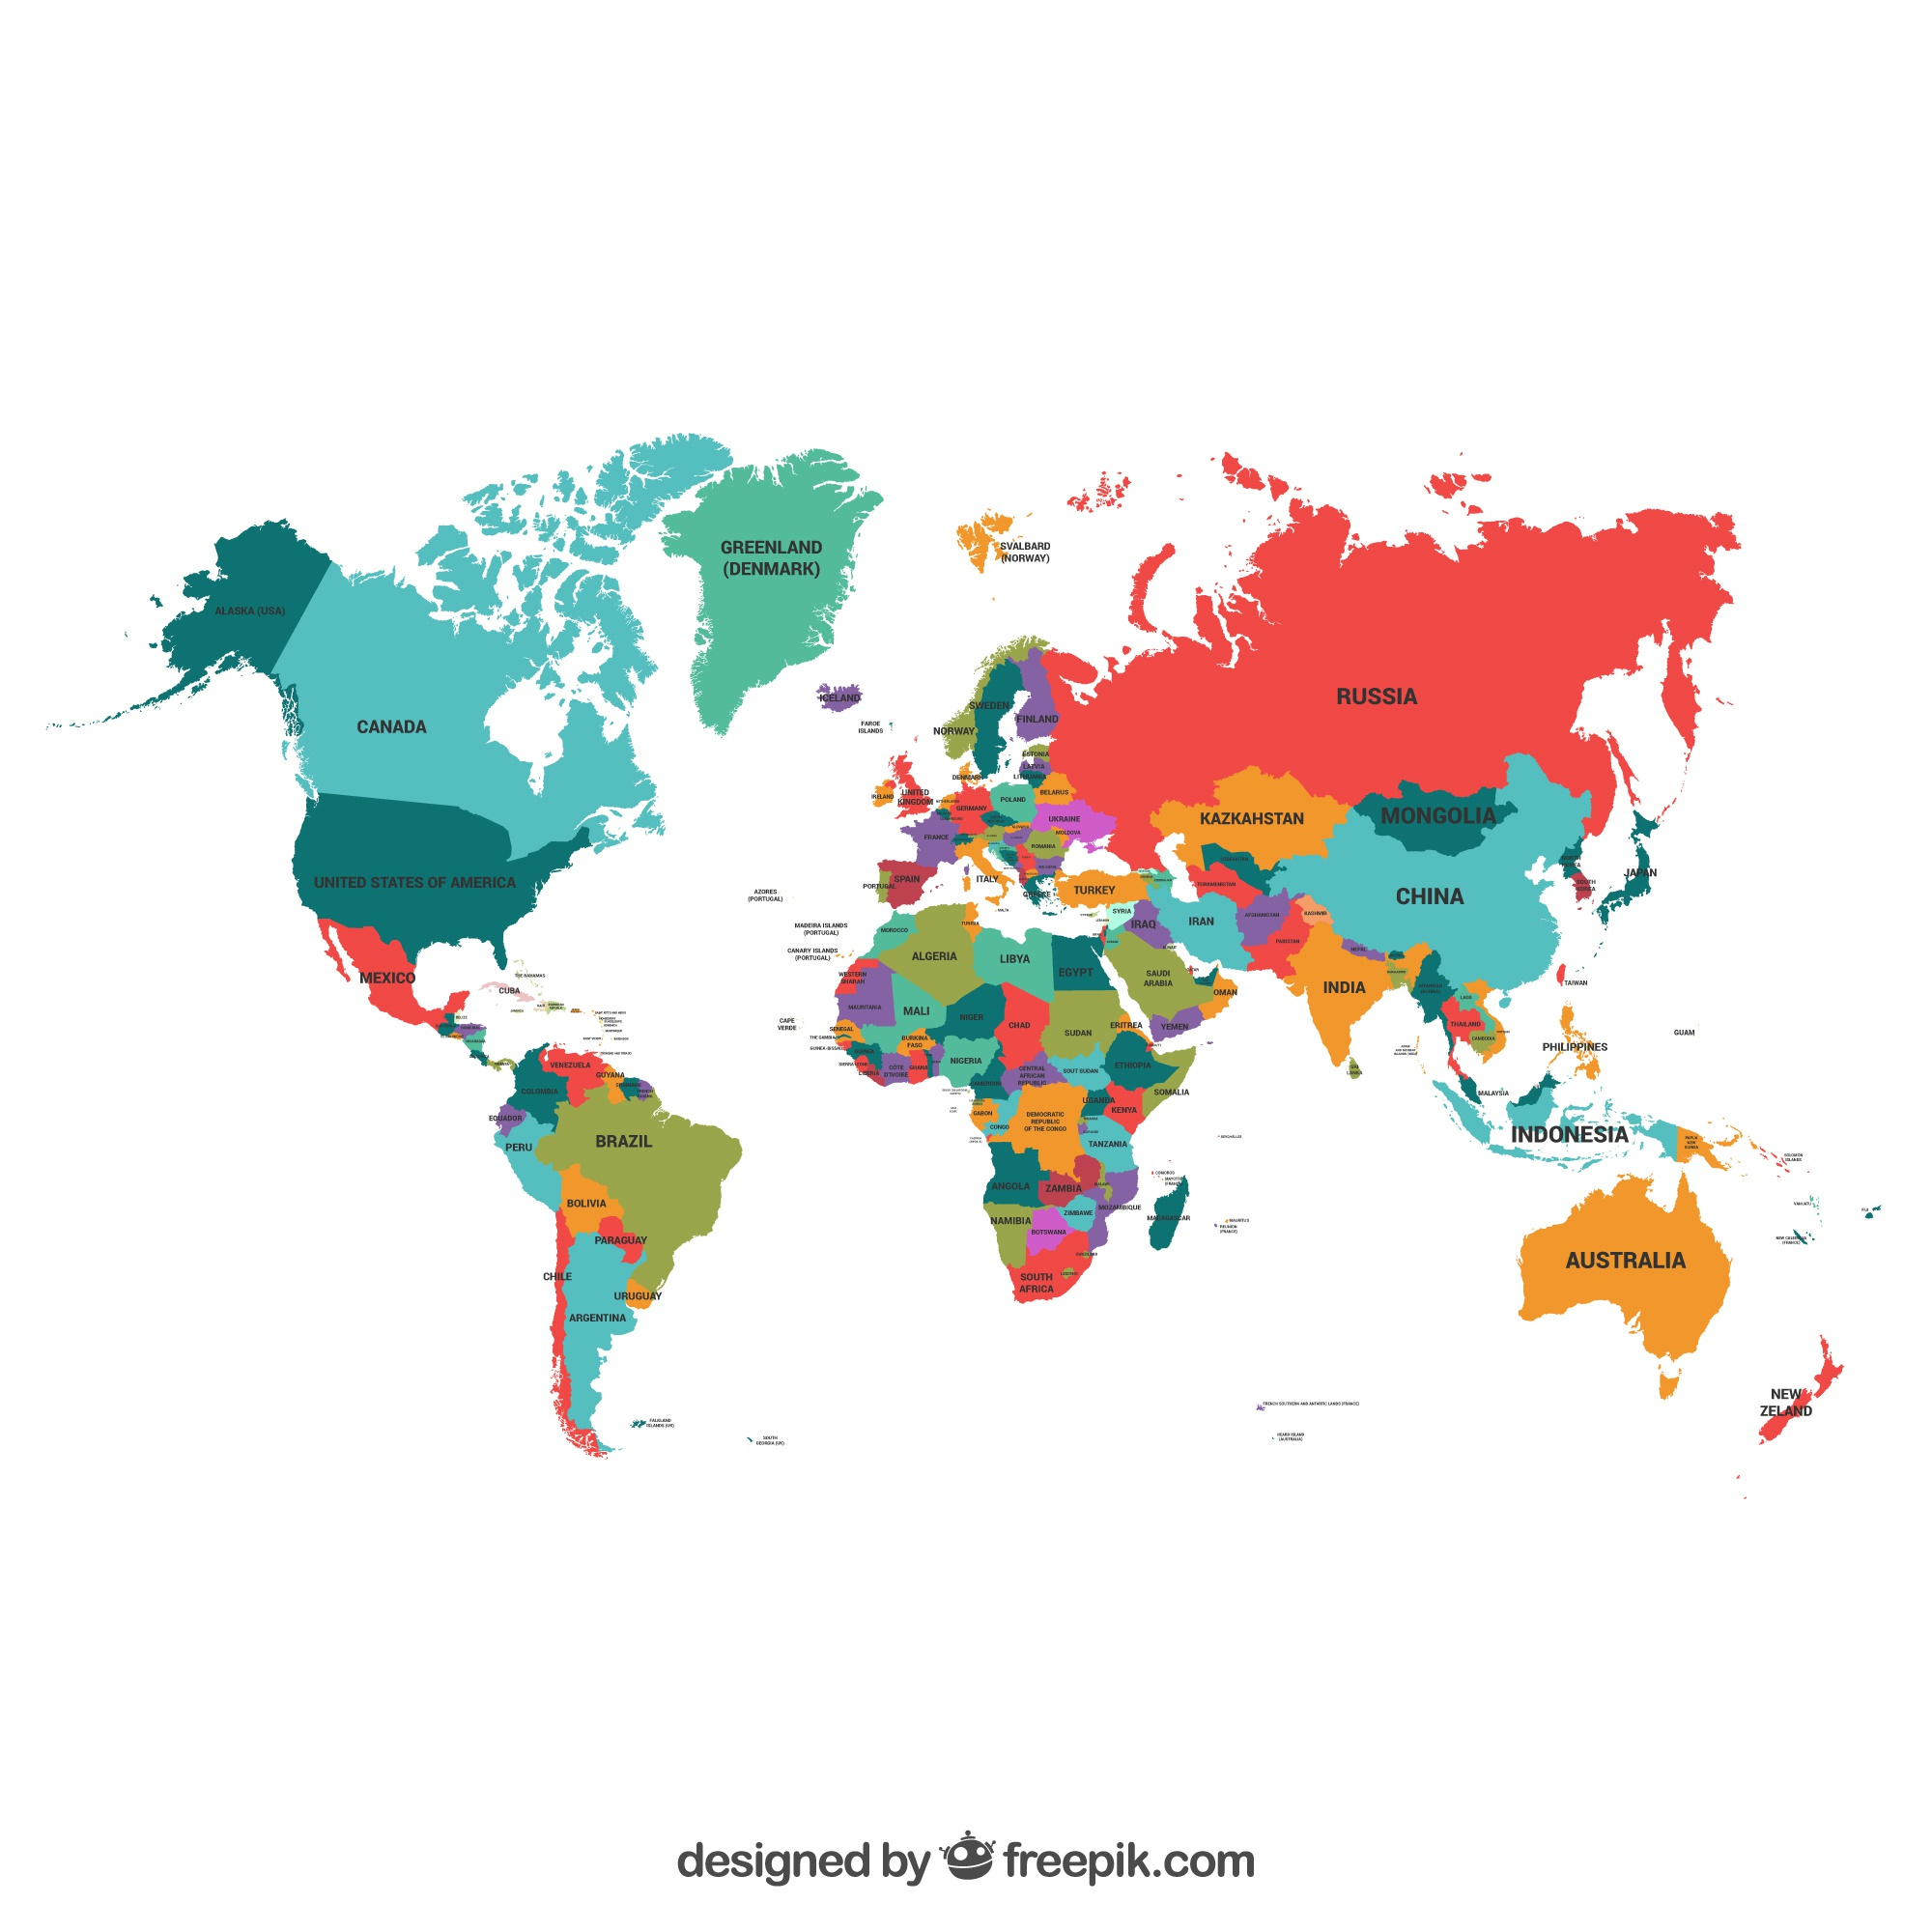 Map vectors 11000 free files in eps format political map of the world gumiabroncs